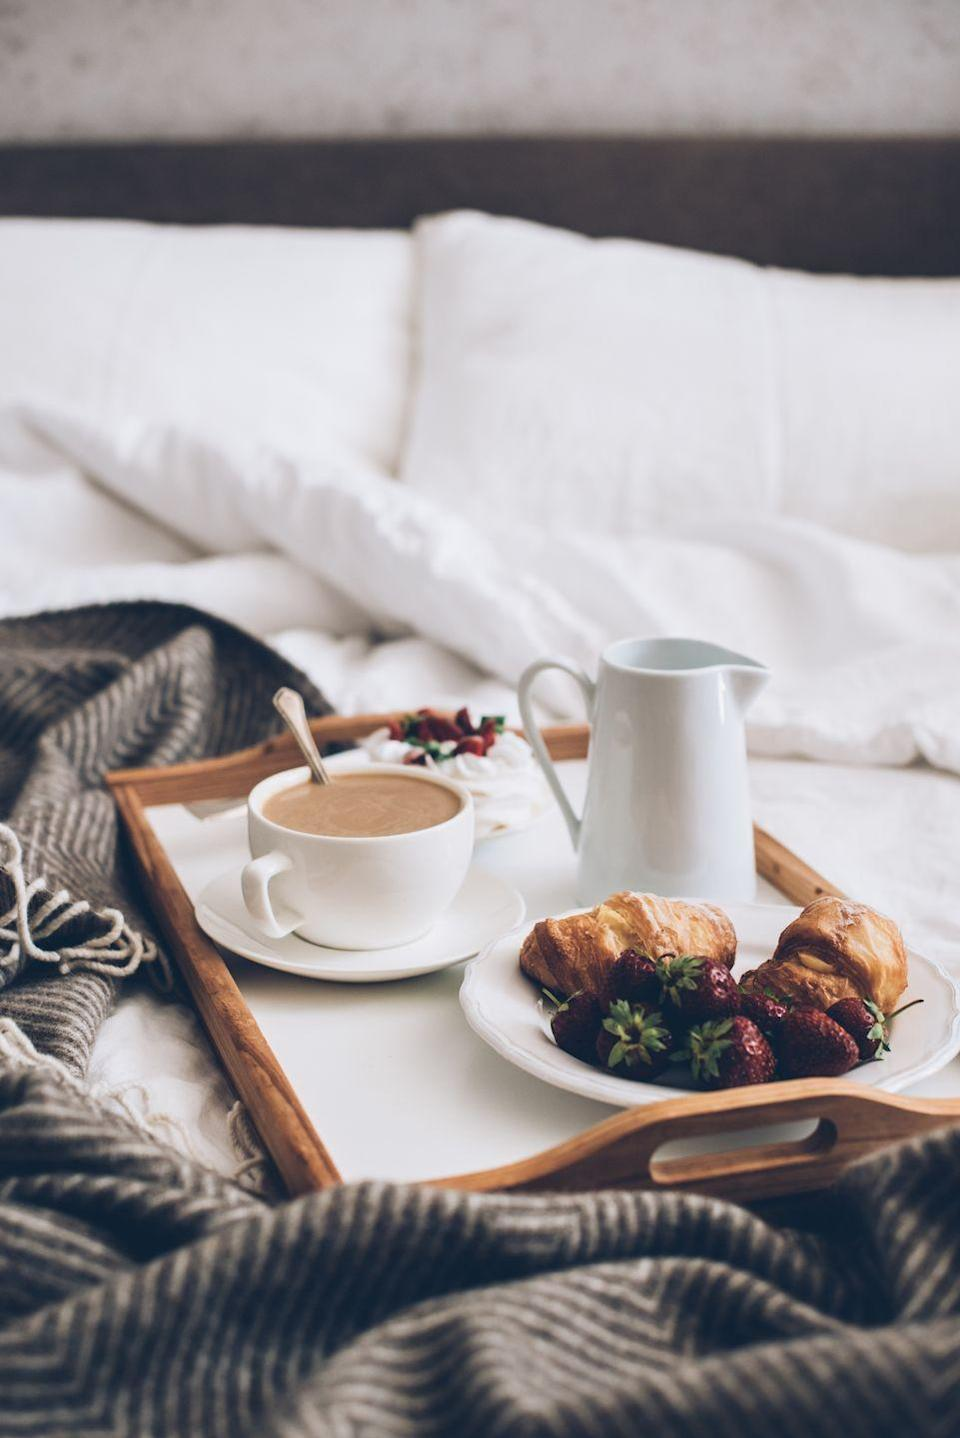 """<p>Simple gestures like breakfast in bed become special when you take them to the next level. Make a huge spread of their favorite things on a <a href=""""https://www.urbanoutfitters.com/shop/laurie-bed-tray"""" rel=""""nofollow noopener"""" target=""""_blank"""" data-ylk=""""slk:cute tray"""" class=""""link rapid-noclick-resp"""">cute tray</a>—bonus points if things like pancakes or waffles are heart-shaped and serve with a favorite book, newspaper or magazine. If cooking isn't your strong suit, then order <a href=""""https://www.williams-sonoma.com/products/williams-sonoma-ready-to-bake-chocolate-croissants/?catalogId=79&sku=2683453&cm_ven=PLA&cm_cat=Google&cm_pla=Food%20%3E%20Croissants%20%26%20Pastries%C2%AEion_id=669950&cm_ite=2683453&gclid=CjwKCAiArIH_BRB2EiwALfbH1MneHSW1cbEqWVJAv_uJBfqDOxAbRzinhvh1XZcjuQDtfNjmNIAEKhoCbl8QAvD_BwE"""" rel=""""nofollow noopener"""" target=""""_blank"""" data-ylk=""""slk:these chocolate croissants"""" class=""""link rapid-noclick-resp"""">these chocolate croissants</a> to serve gooey out of the oven and pick up their favorite coffee. </p>"""